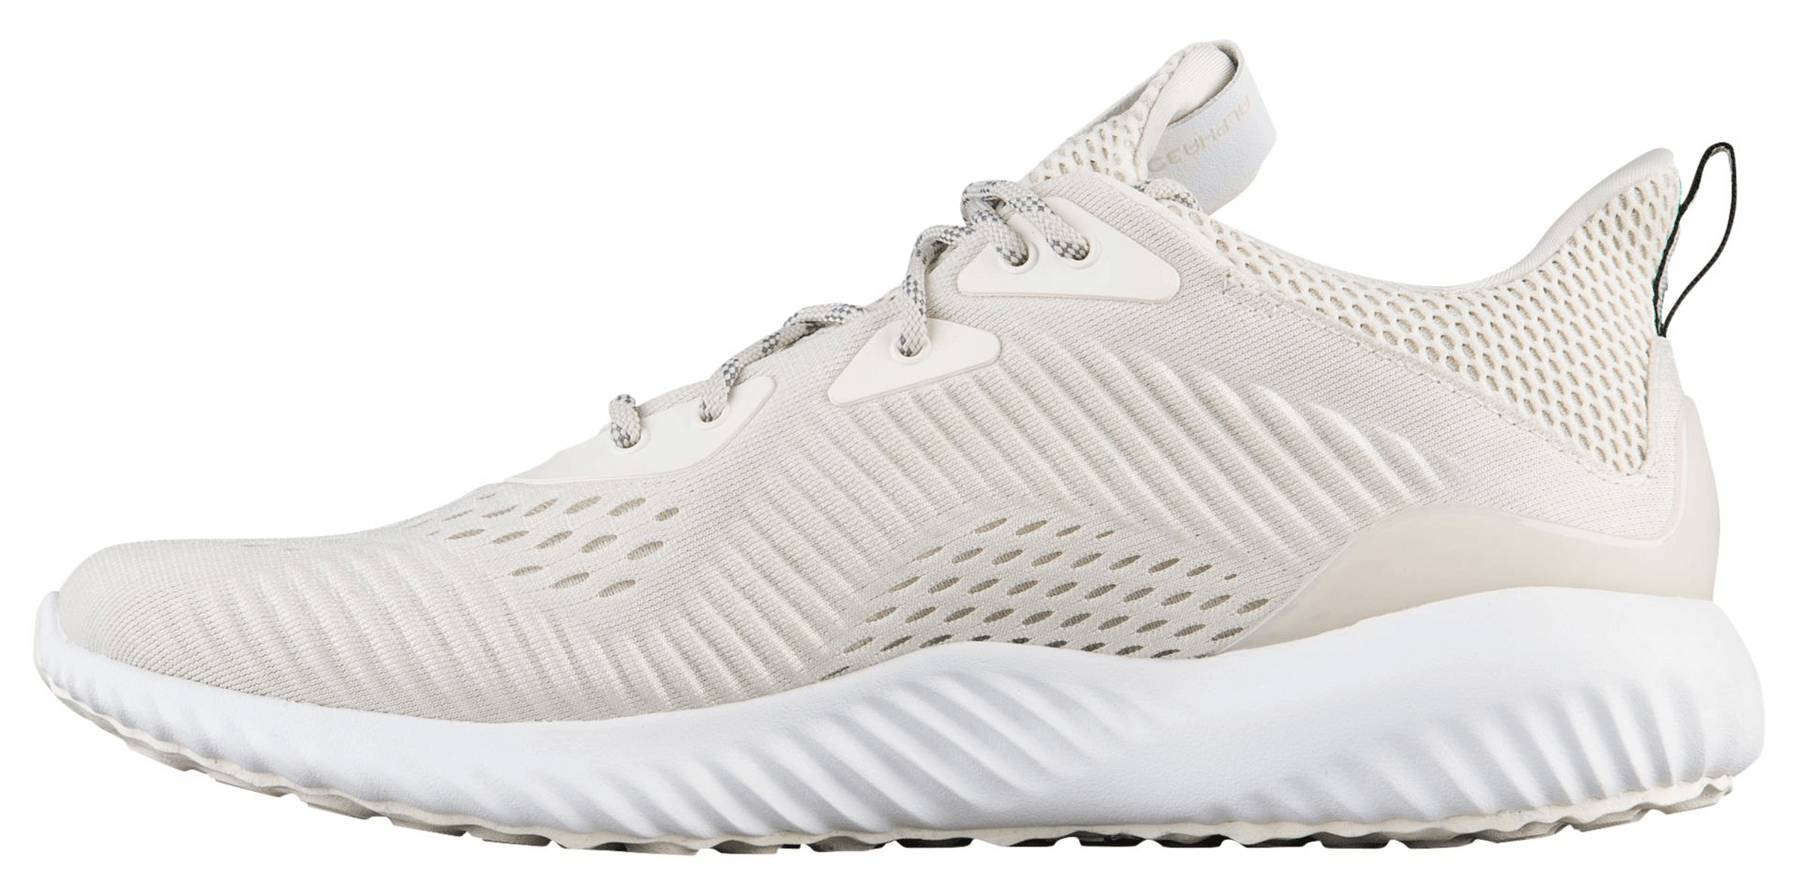 64ac165cc5347 ... adidas Alphabounce EM Men s Running Shoes - League Outfitters ...